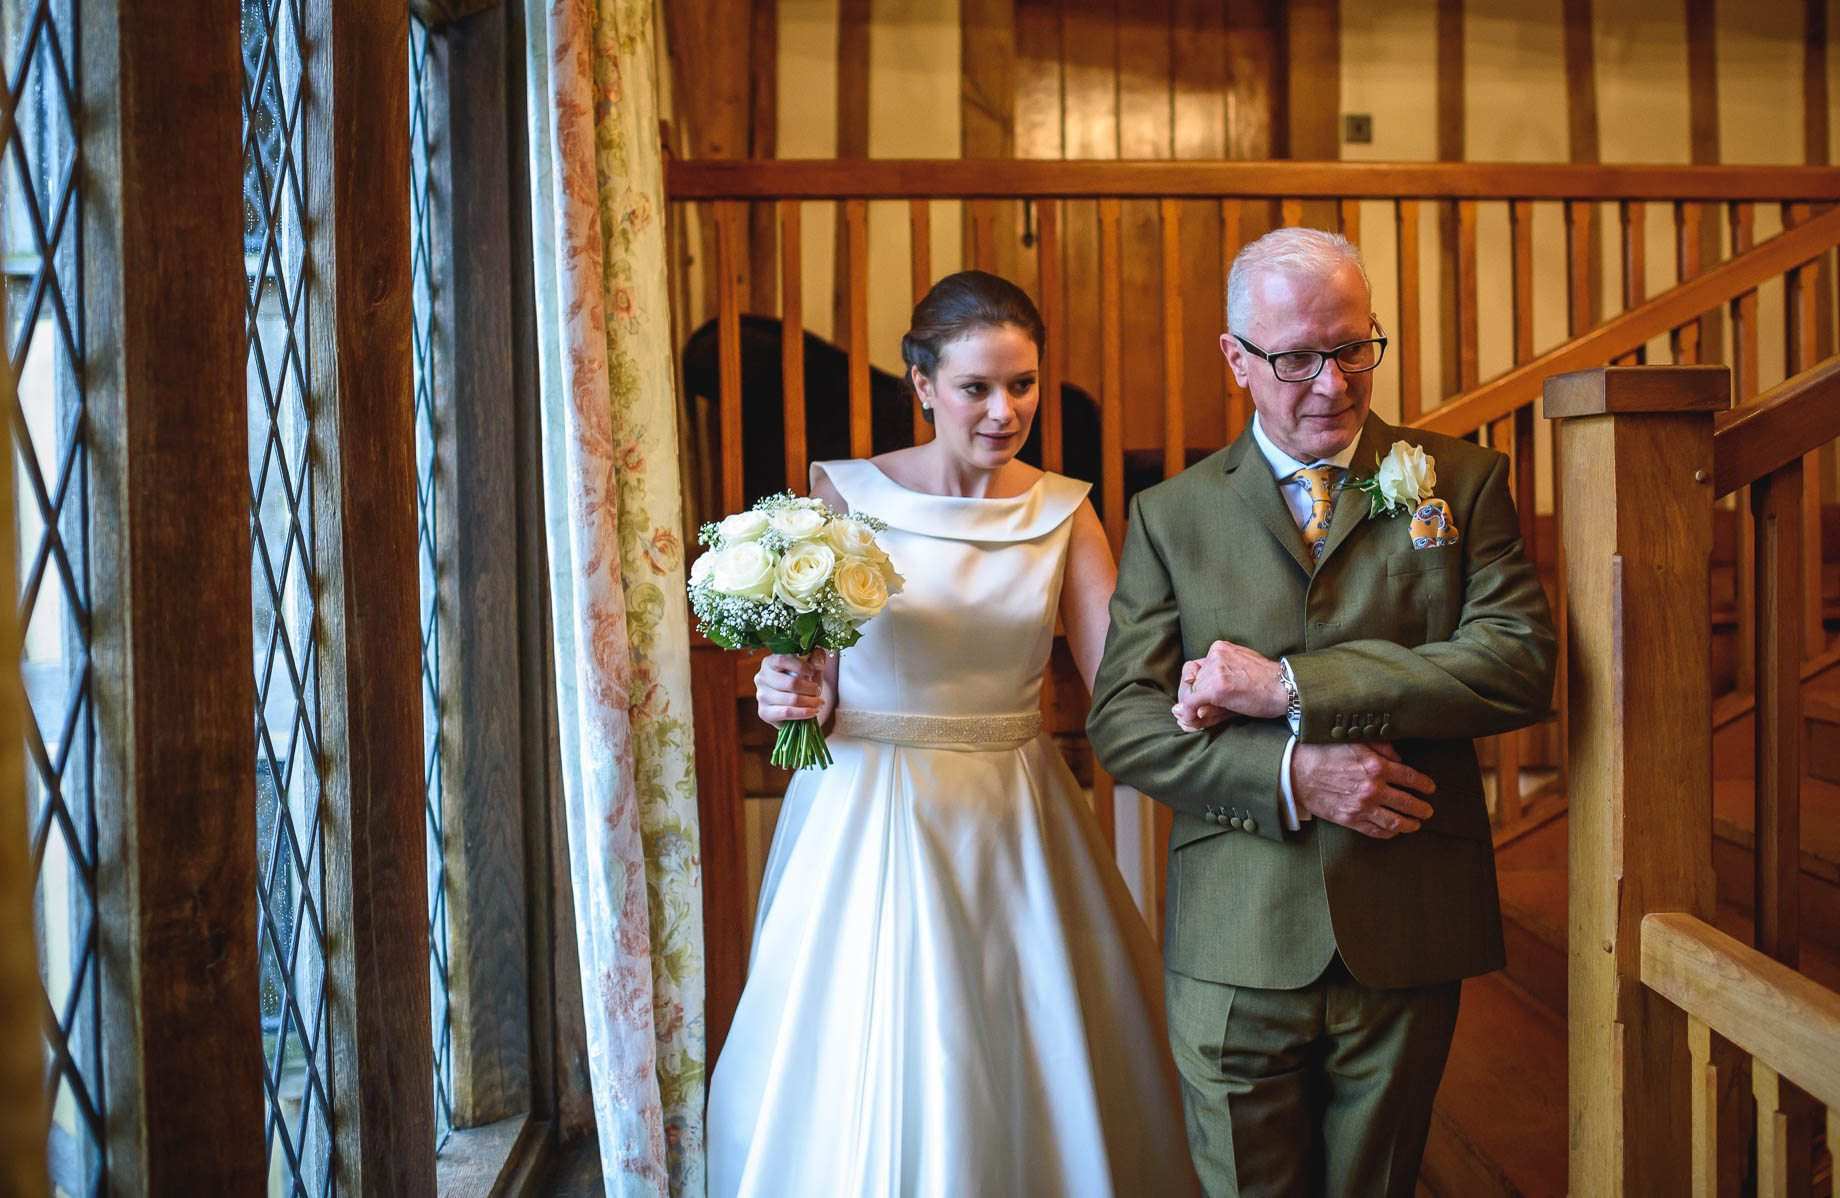 Cain-Manor-wedding-photography-Alex-and-Jamie-59-of-154